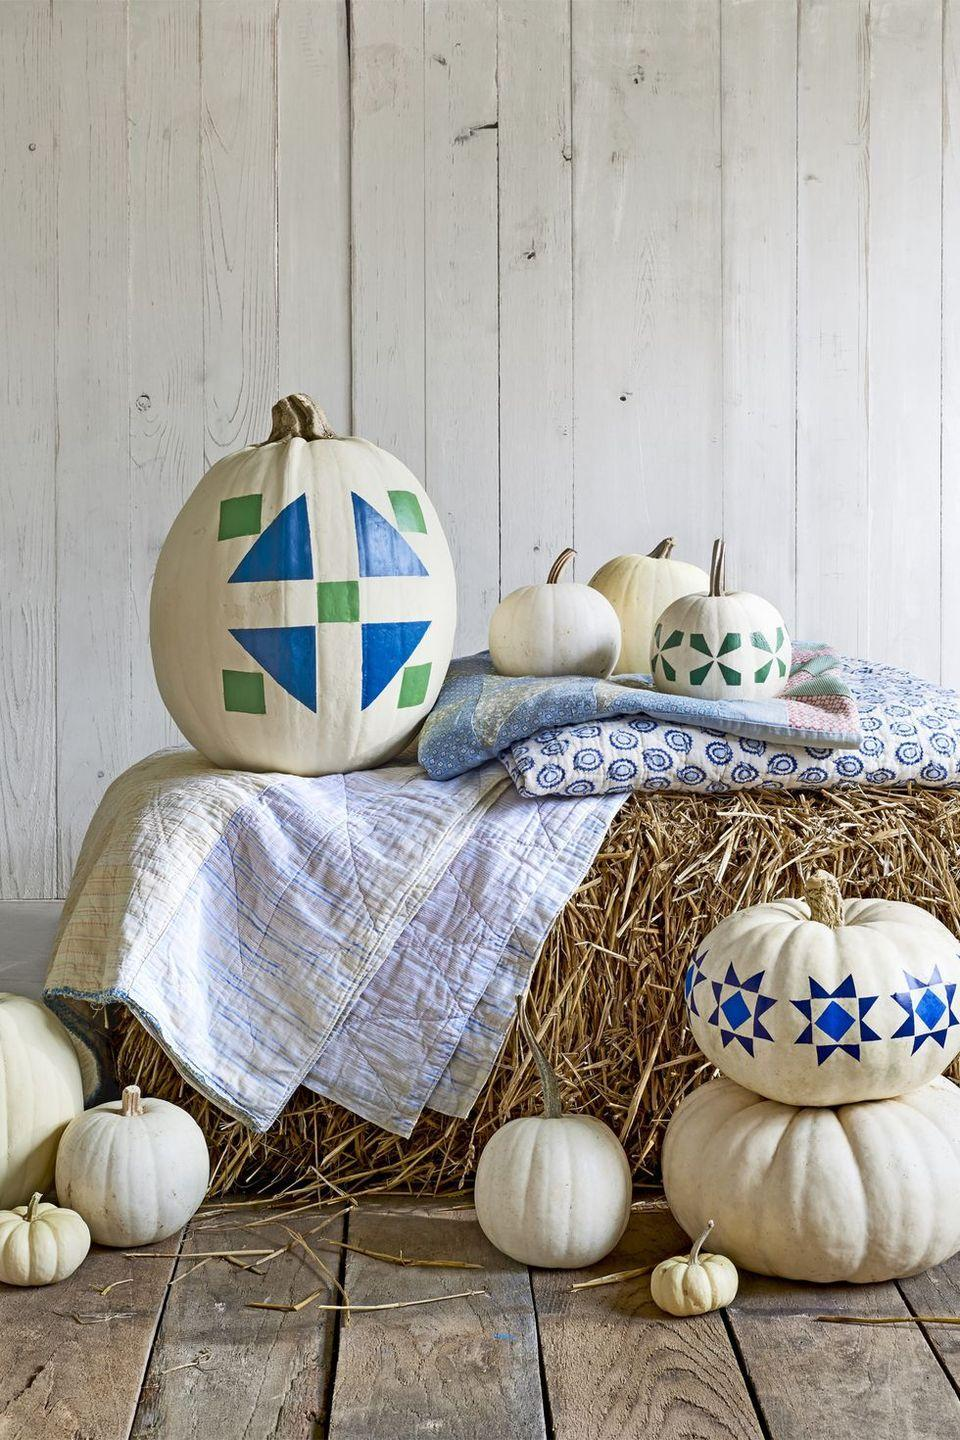 """<p>There's no rule that you have to have scary pumpkins for Halloween. Paint some beautiful quilt-inspired designs instead! </p><p><strong><em>Get the tutorial at <a href=""""https://www.countryliving.com/diy-crafts/g1350/pumpkin-decorating-1009/"""" rel=""""nofollow noopener"""" target=""""_blank"""" data-ylk=""""slk:Country Living."""" class=""""link rapid-noclick-resp"""">Country Living.</a> </em></strong></p>"""